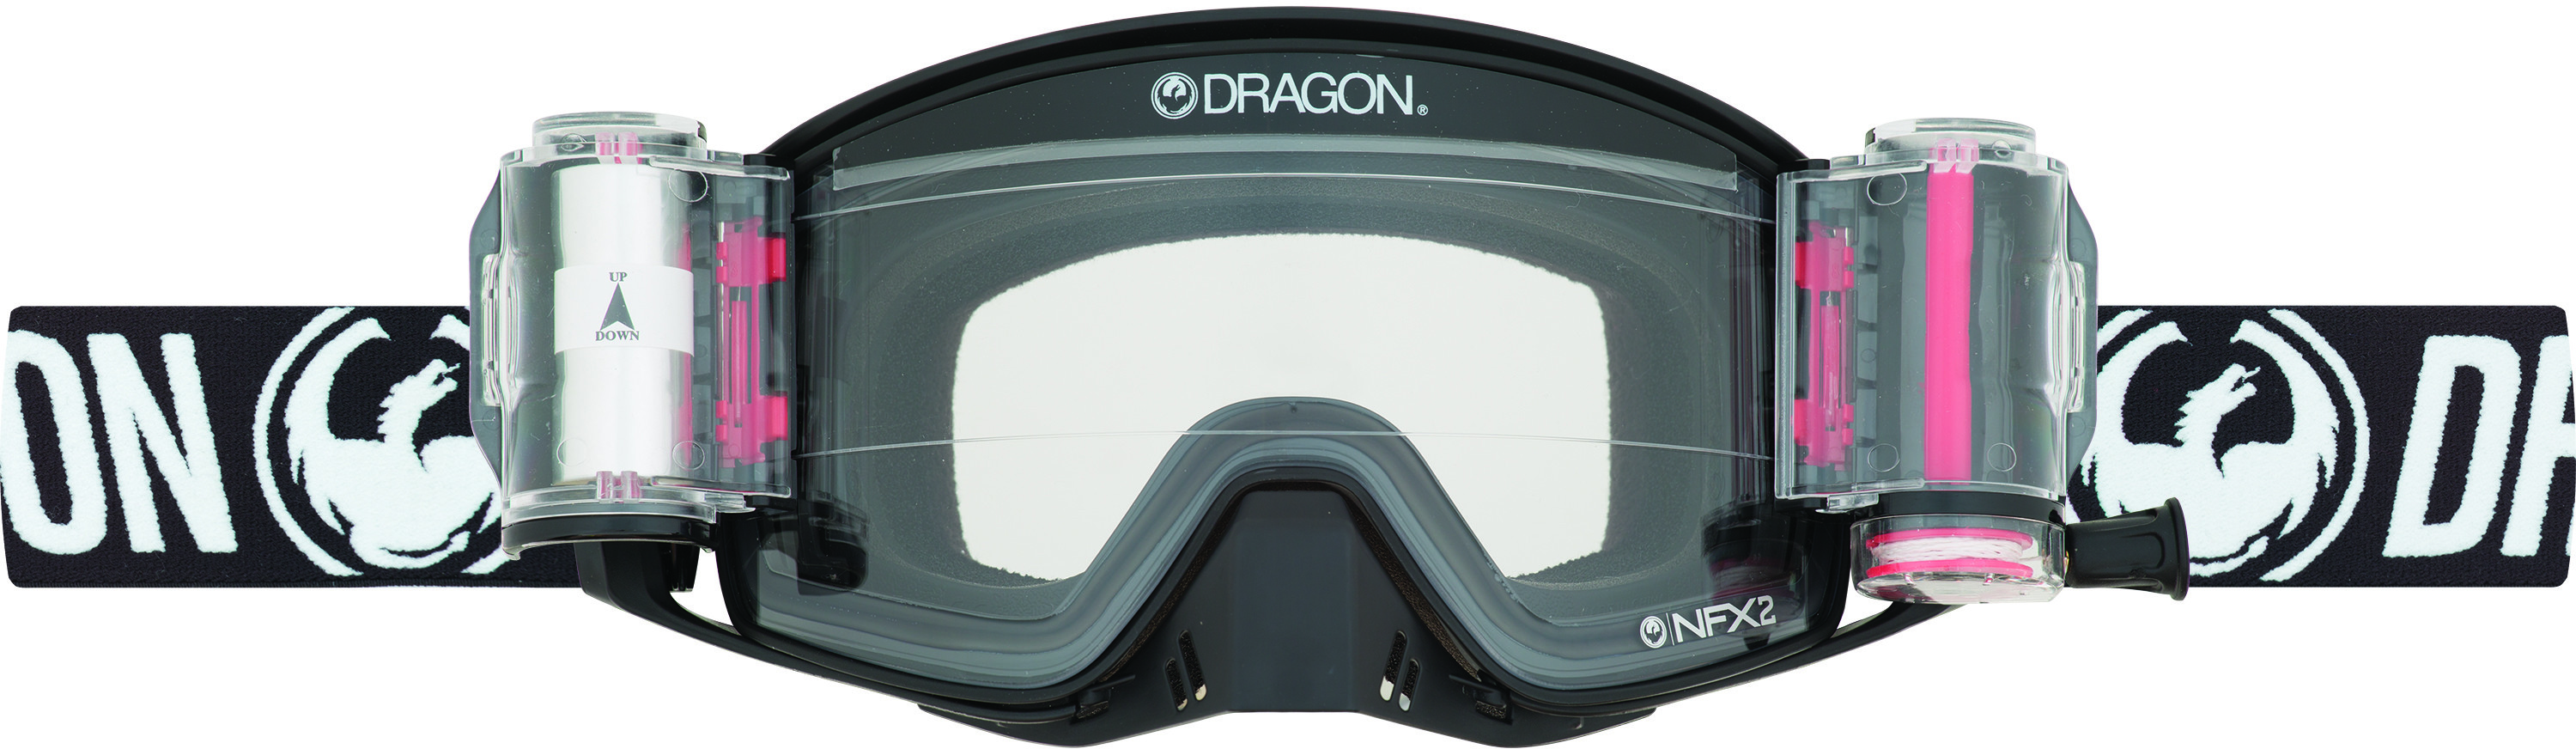 Nfx2 Goggle Coal Rrs W/Dragon Strap And Injected Clear Lens